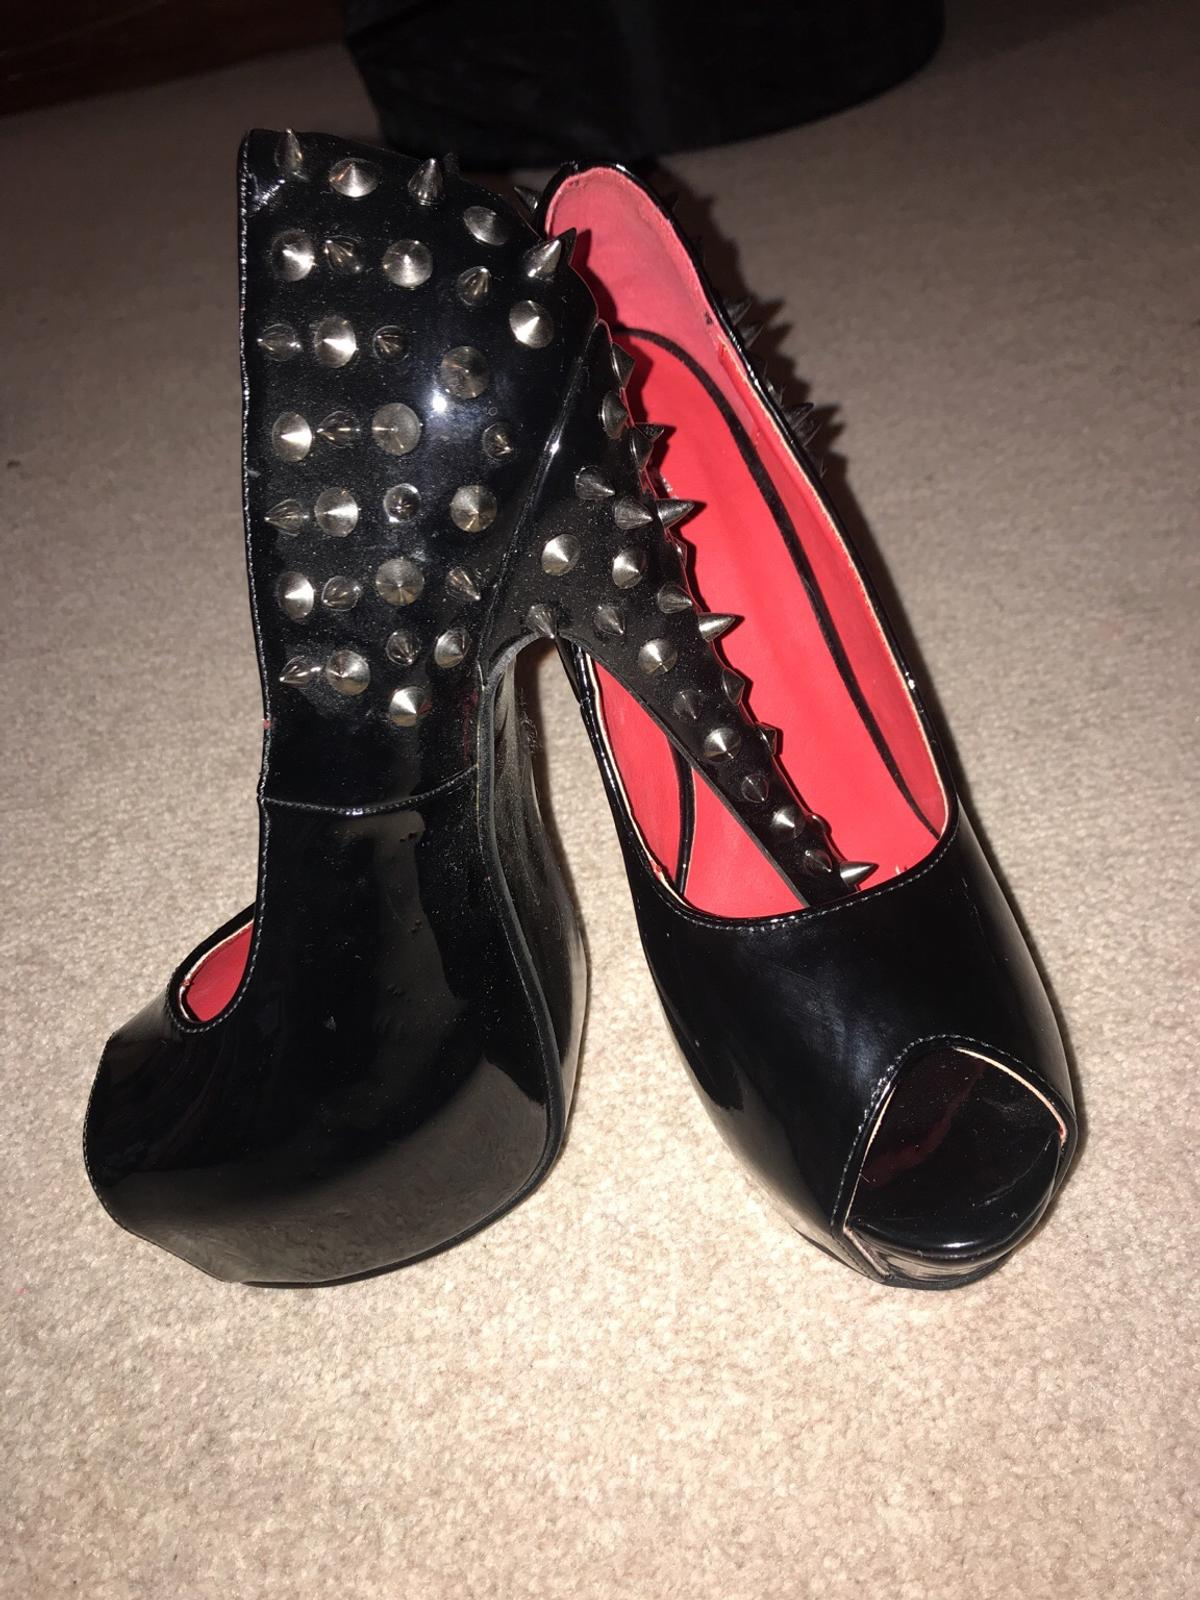 e8747d11e60 Essex Glam Black Patent Leather Studded Heels in Darlington for ...